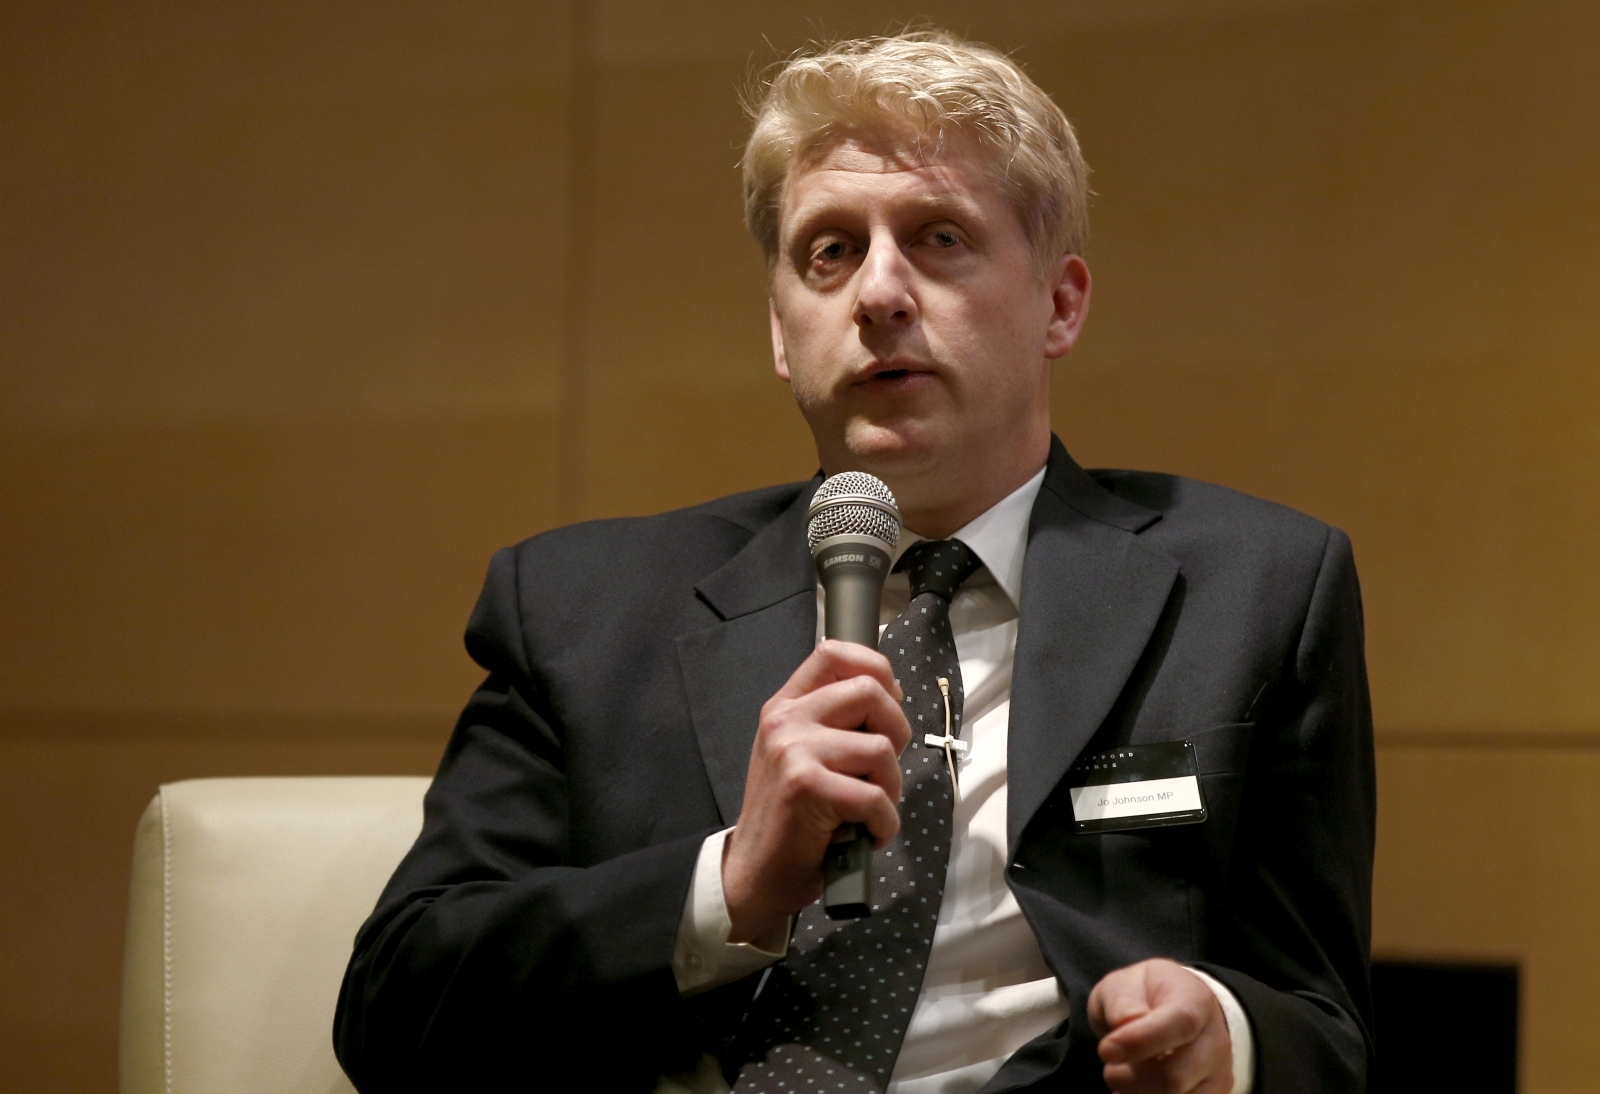 Jo Johnson to tell universities to stop 'no-platforming' speakers